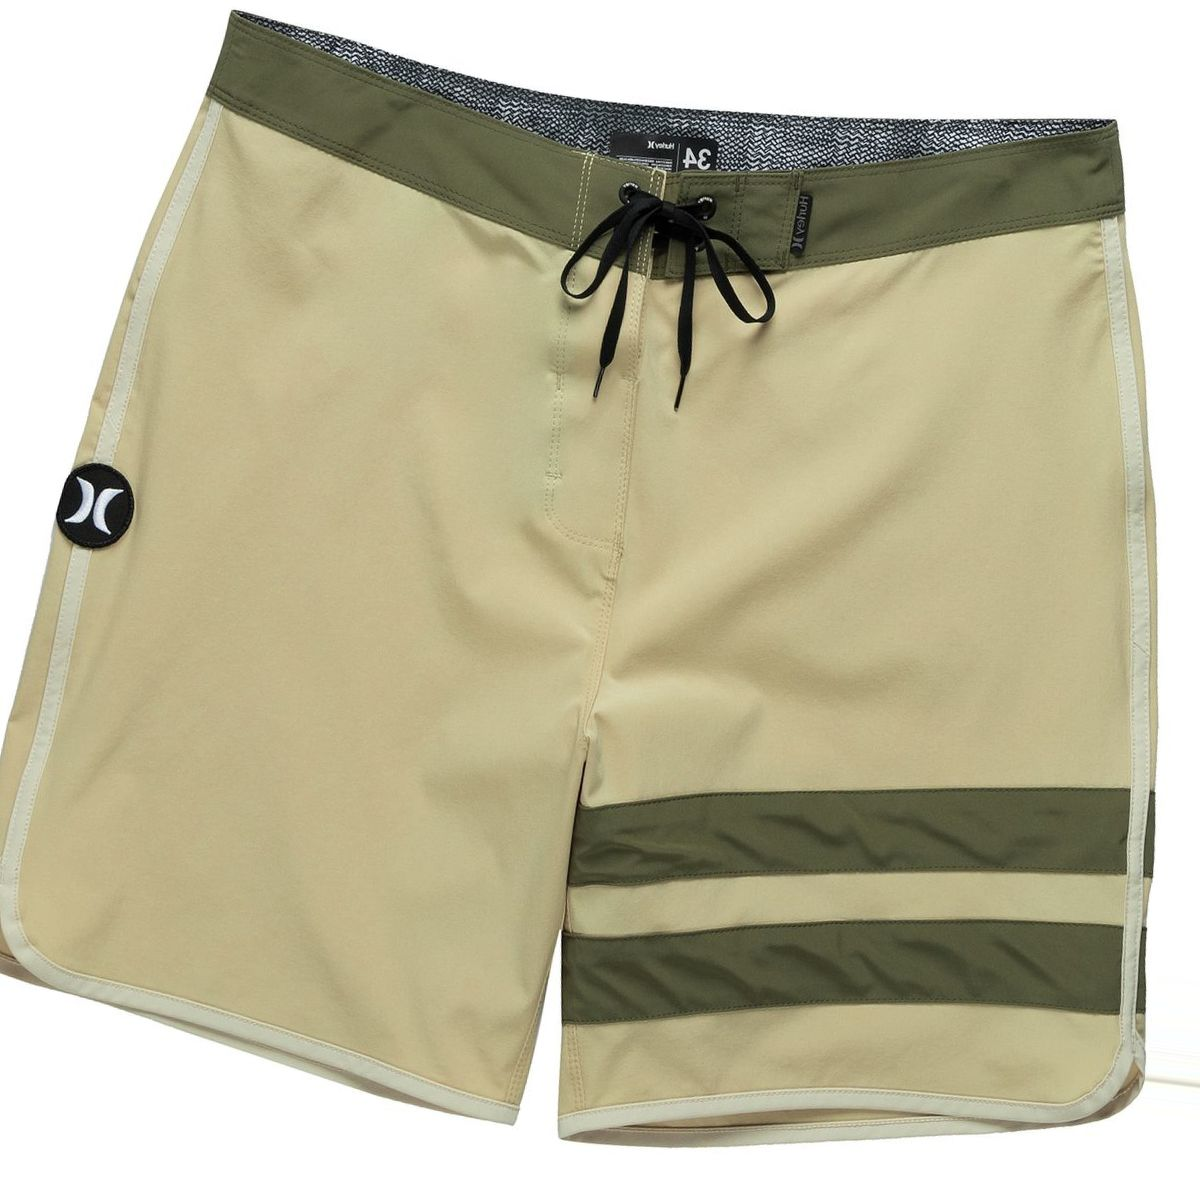 Hurley Phantom Block Party Solid Board Short - Men's